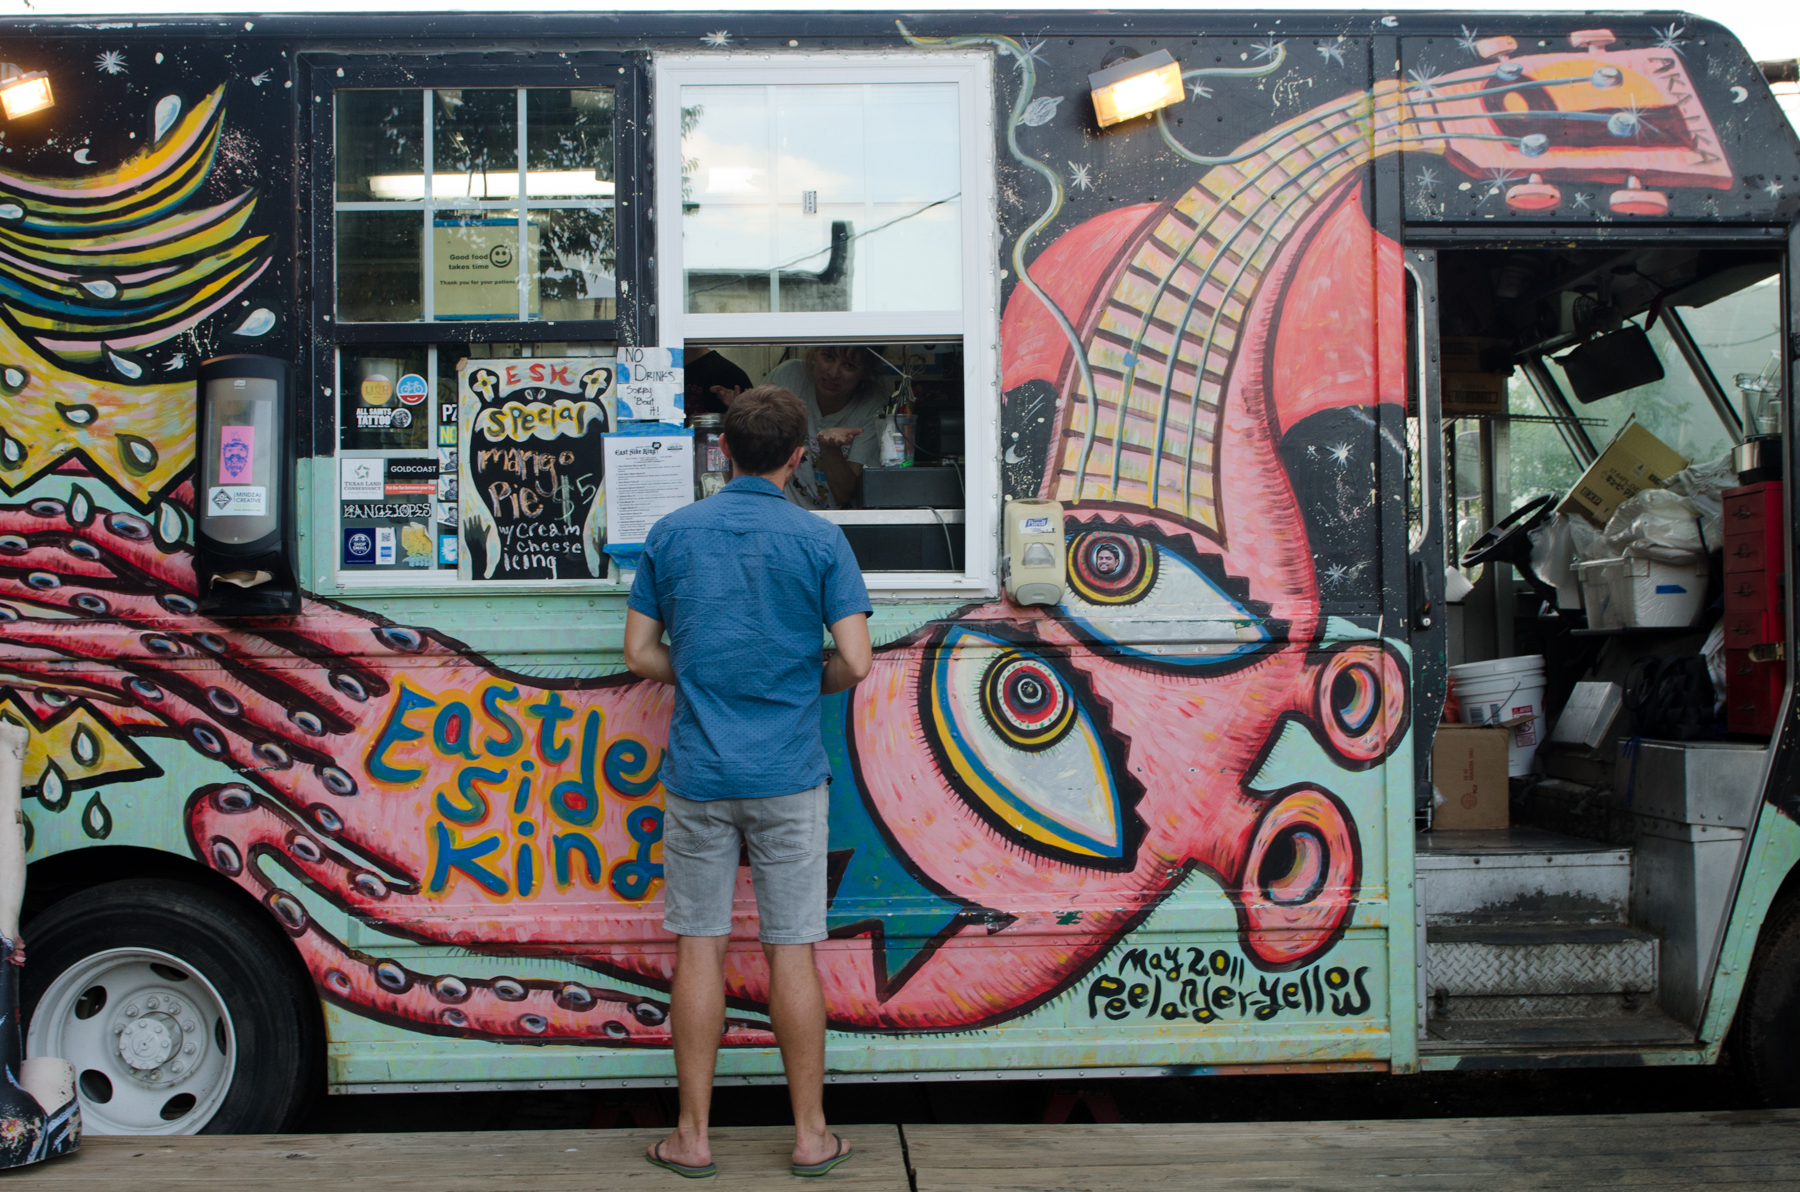 East Side King, an award-winning food truck serving up incredible Asian food from the courtyard of a dive bar - just one of Austin's 1000 food trucks.